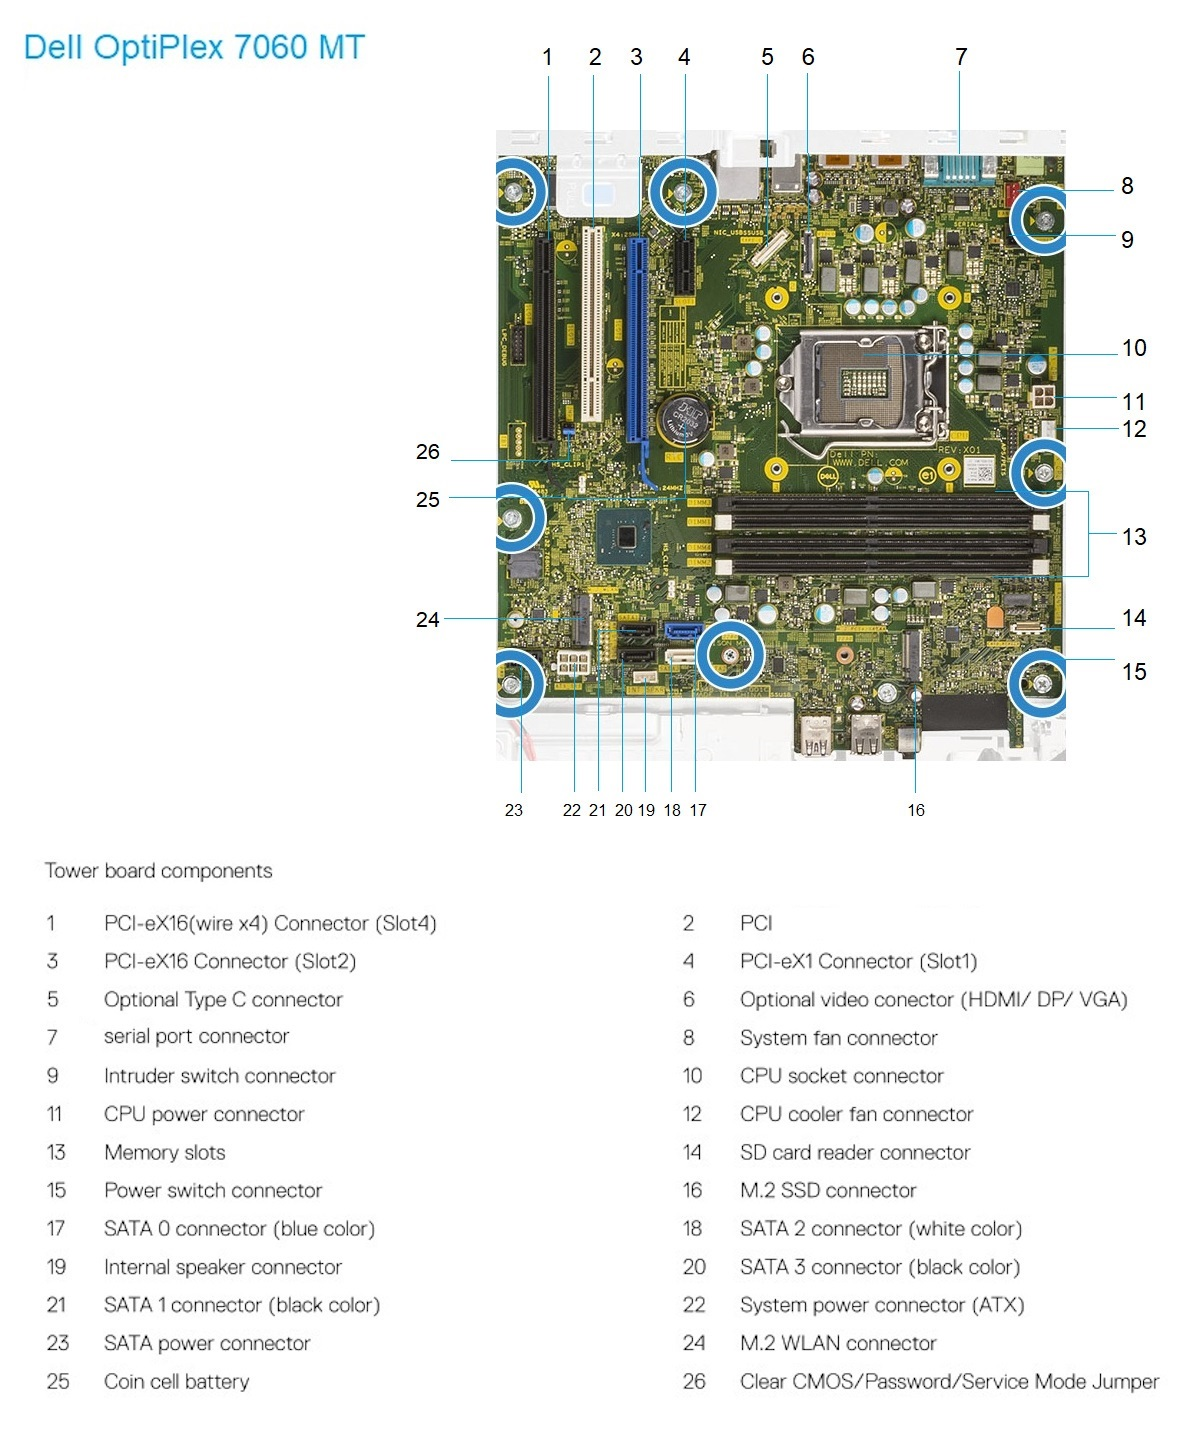 Dell OptiPlex 7060 MT motherboard layout